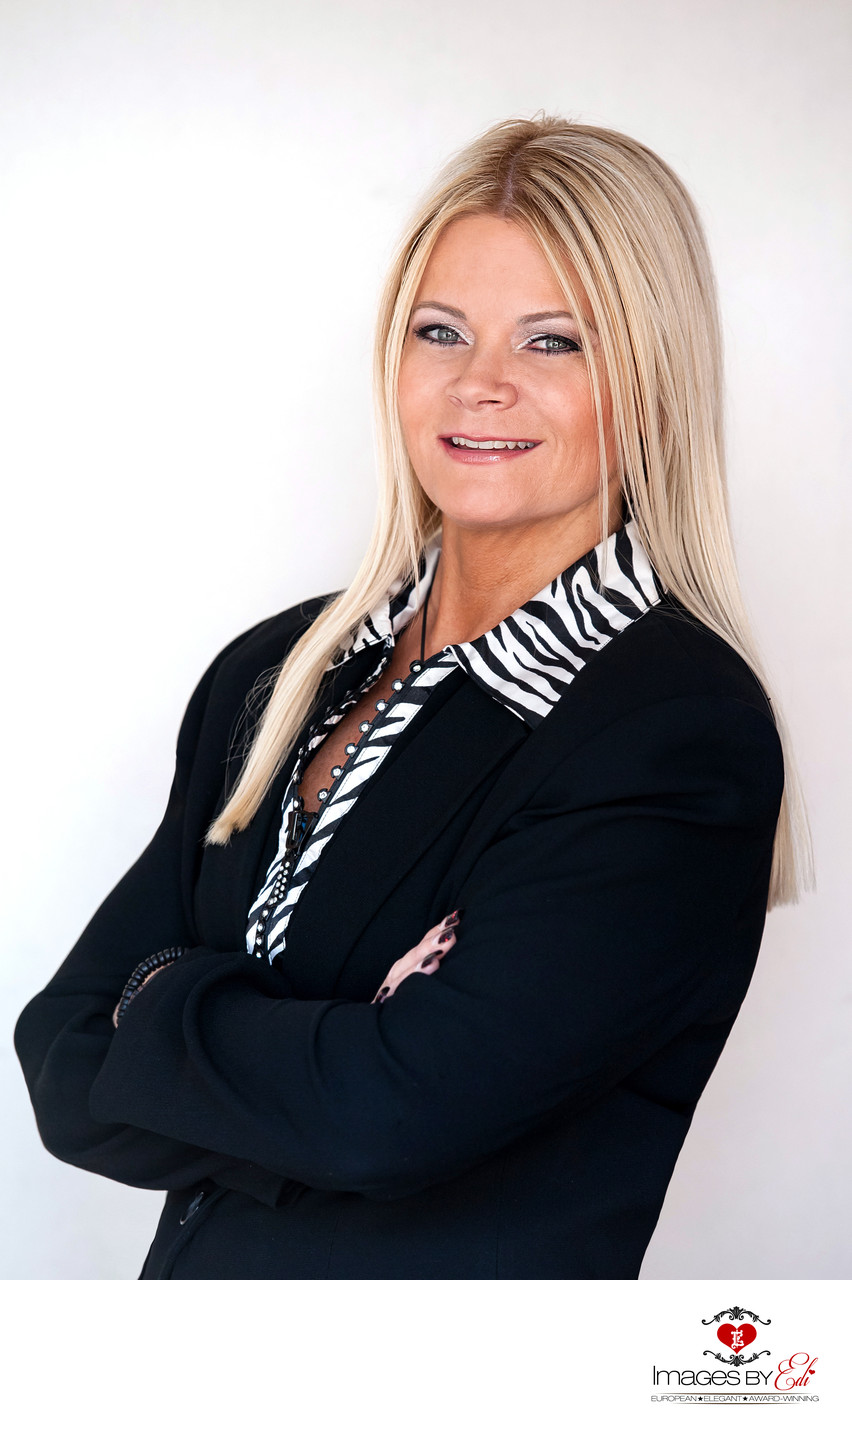 Top Las Vegas Real Estate Headshot Photographer